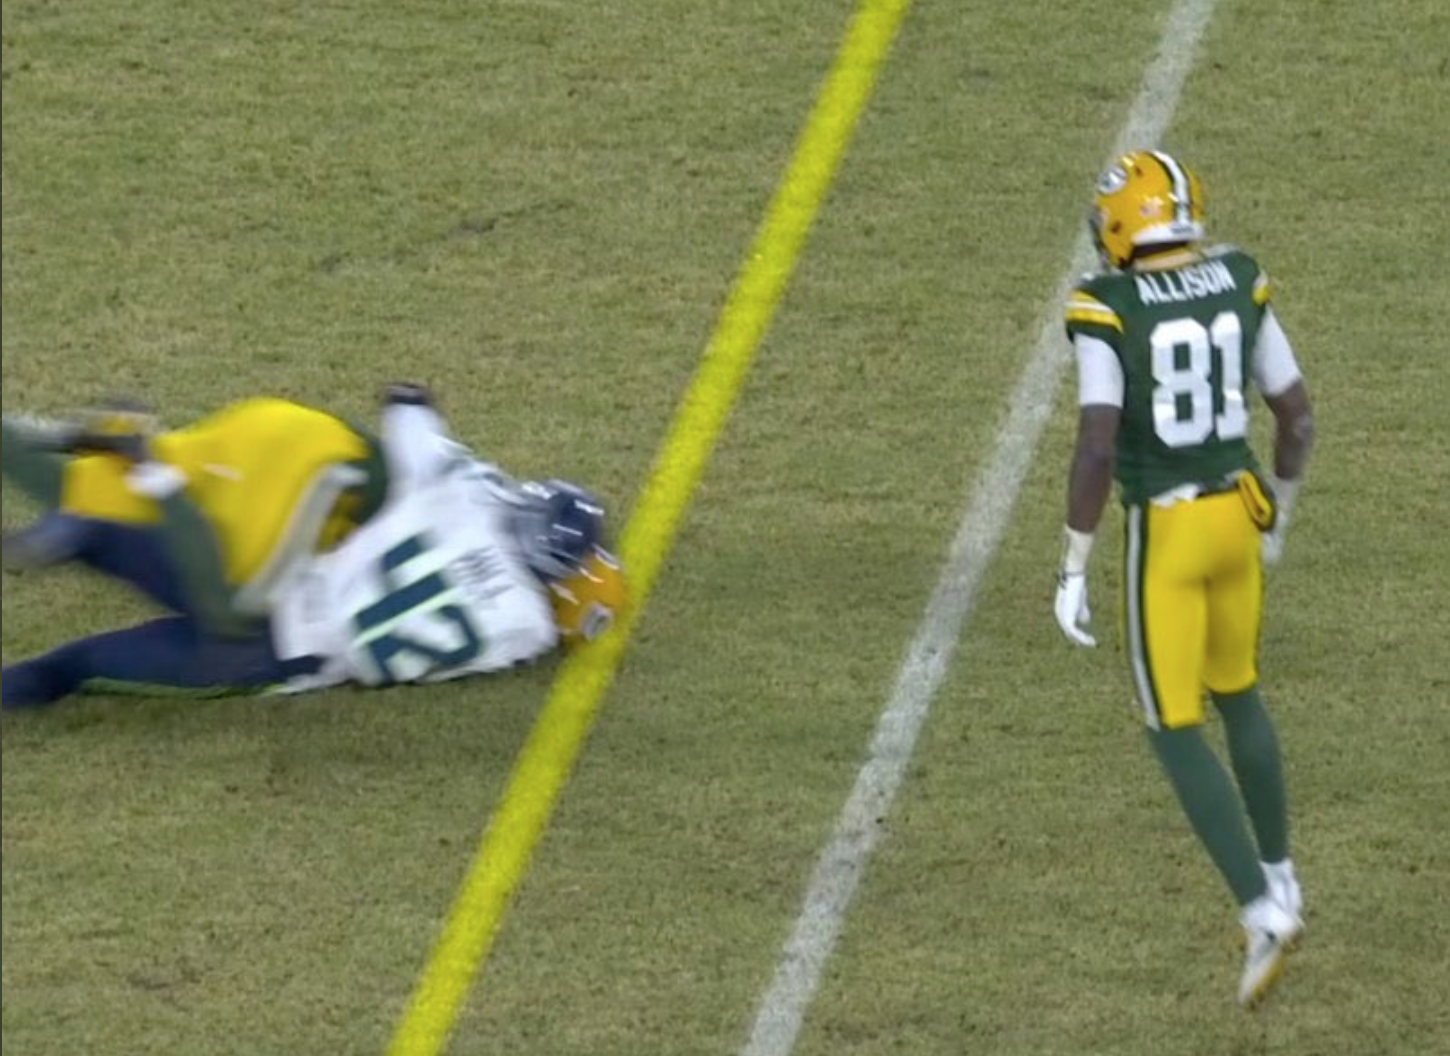 Look: Seahawks screwed by referees' controversial first-down ruling in loss to Packers